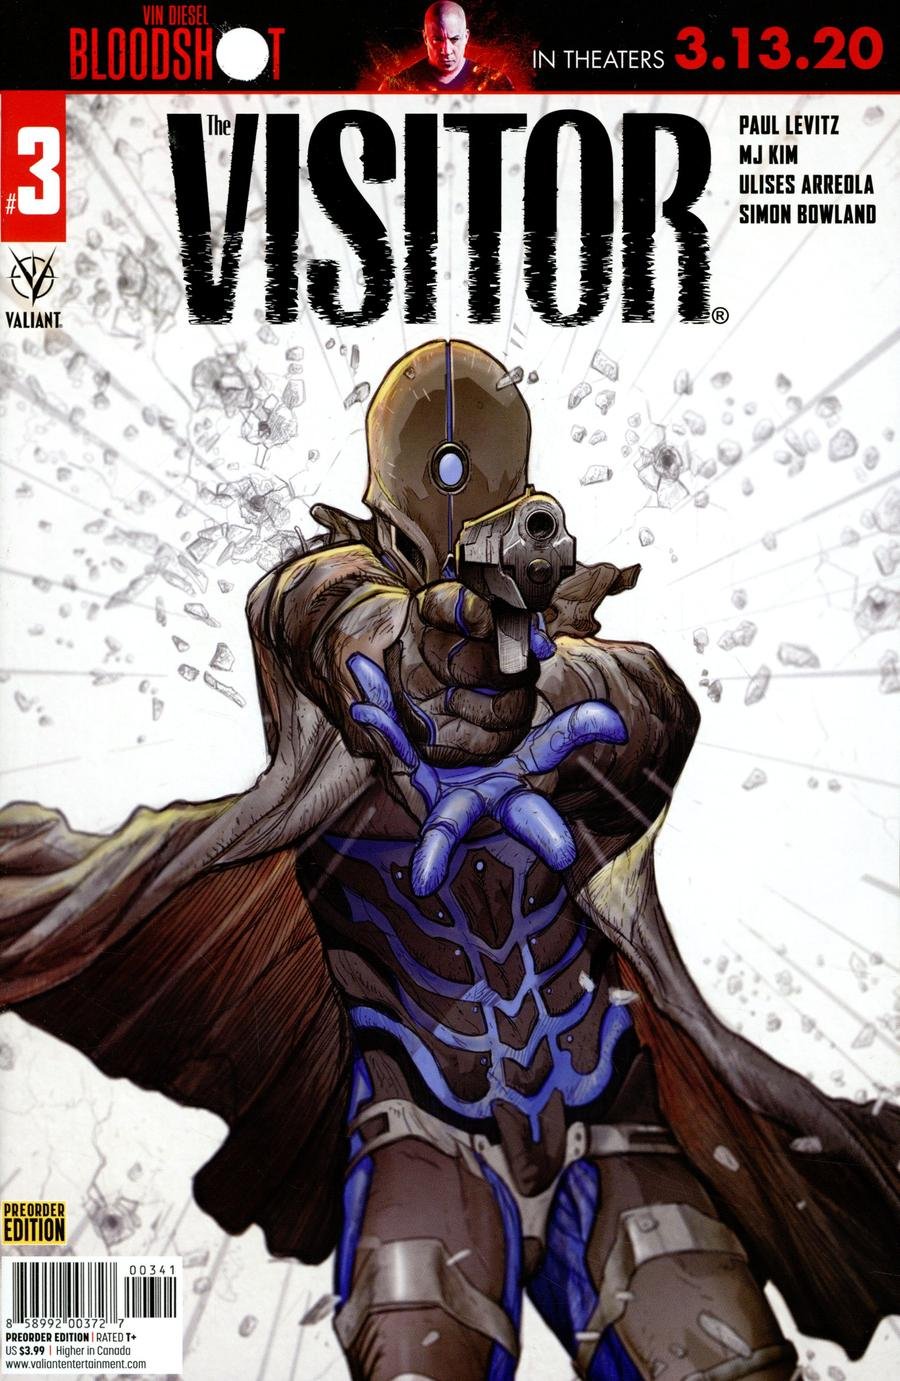 Visitor Vol 2 #3 Cover D Variant Pre-Order Edition